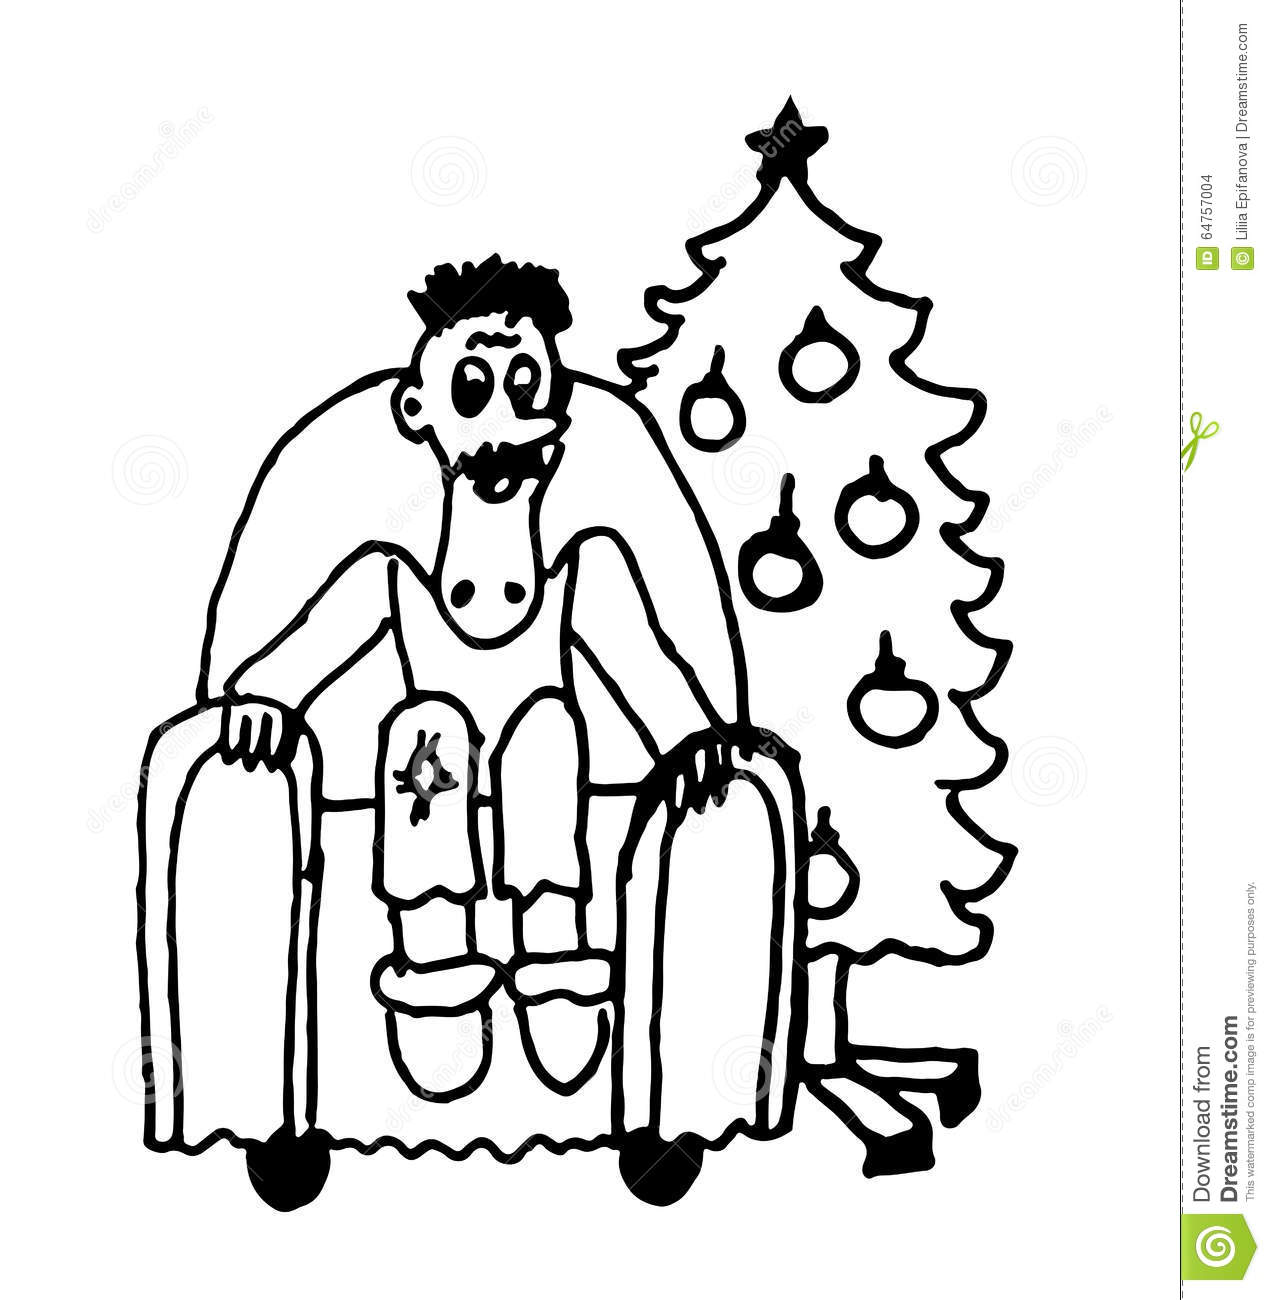 Man sitting in chair drawing - Royalty Free Vector